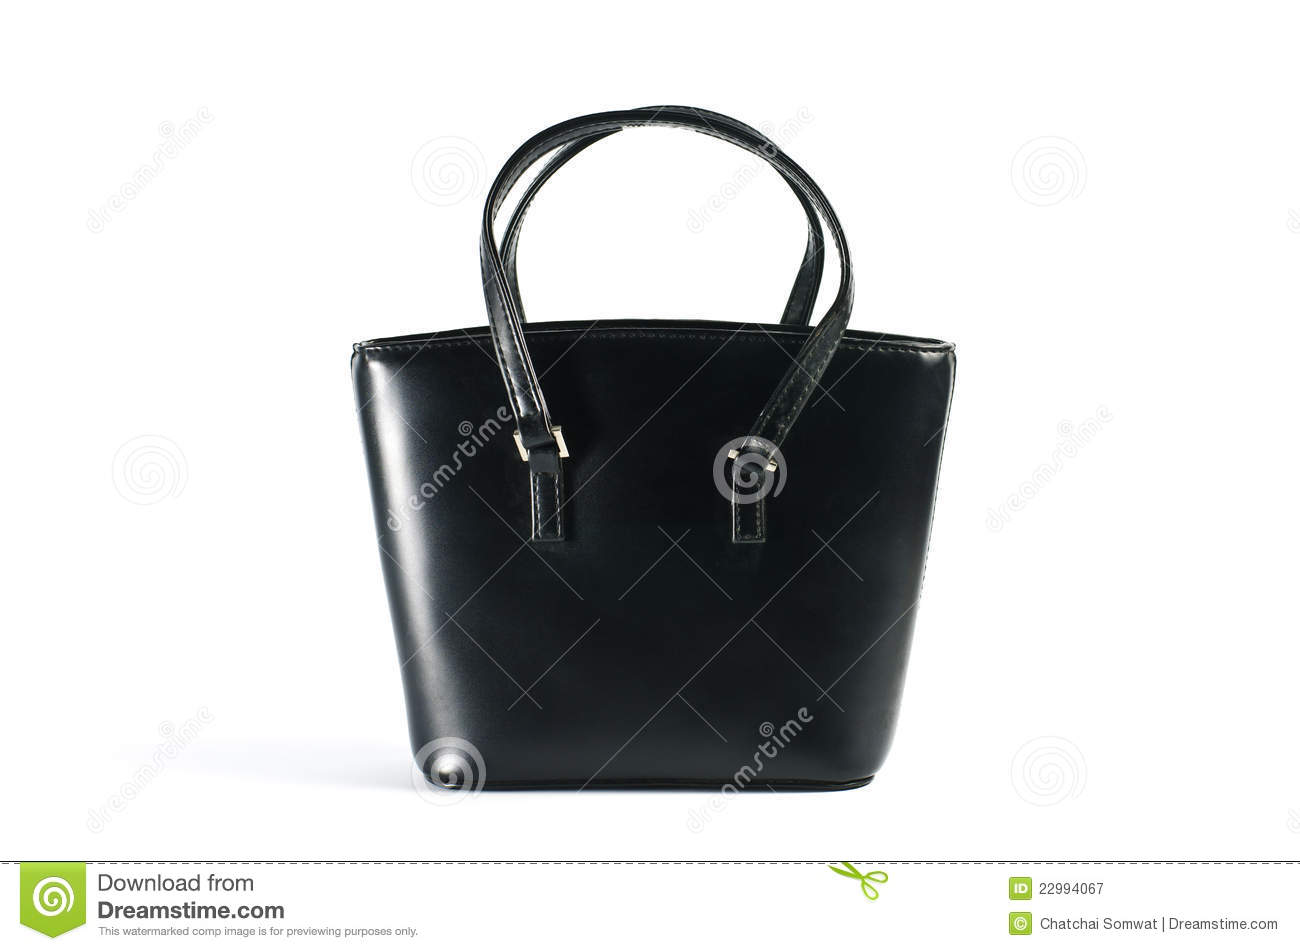 Unique Women Black Leather Bags Women Bags Women Messenger Bag Women Leather